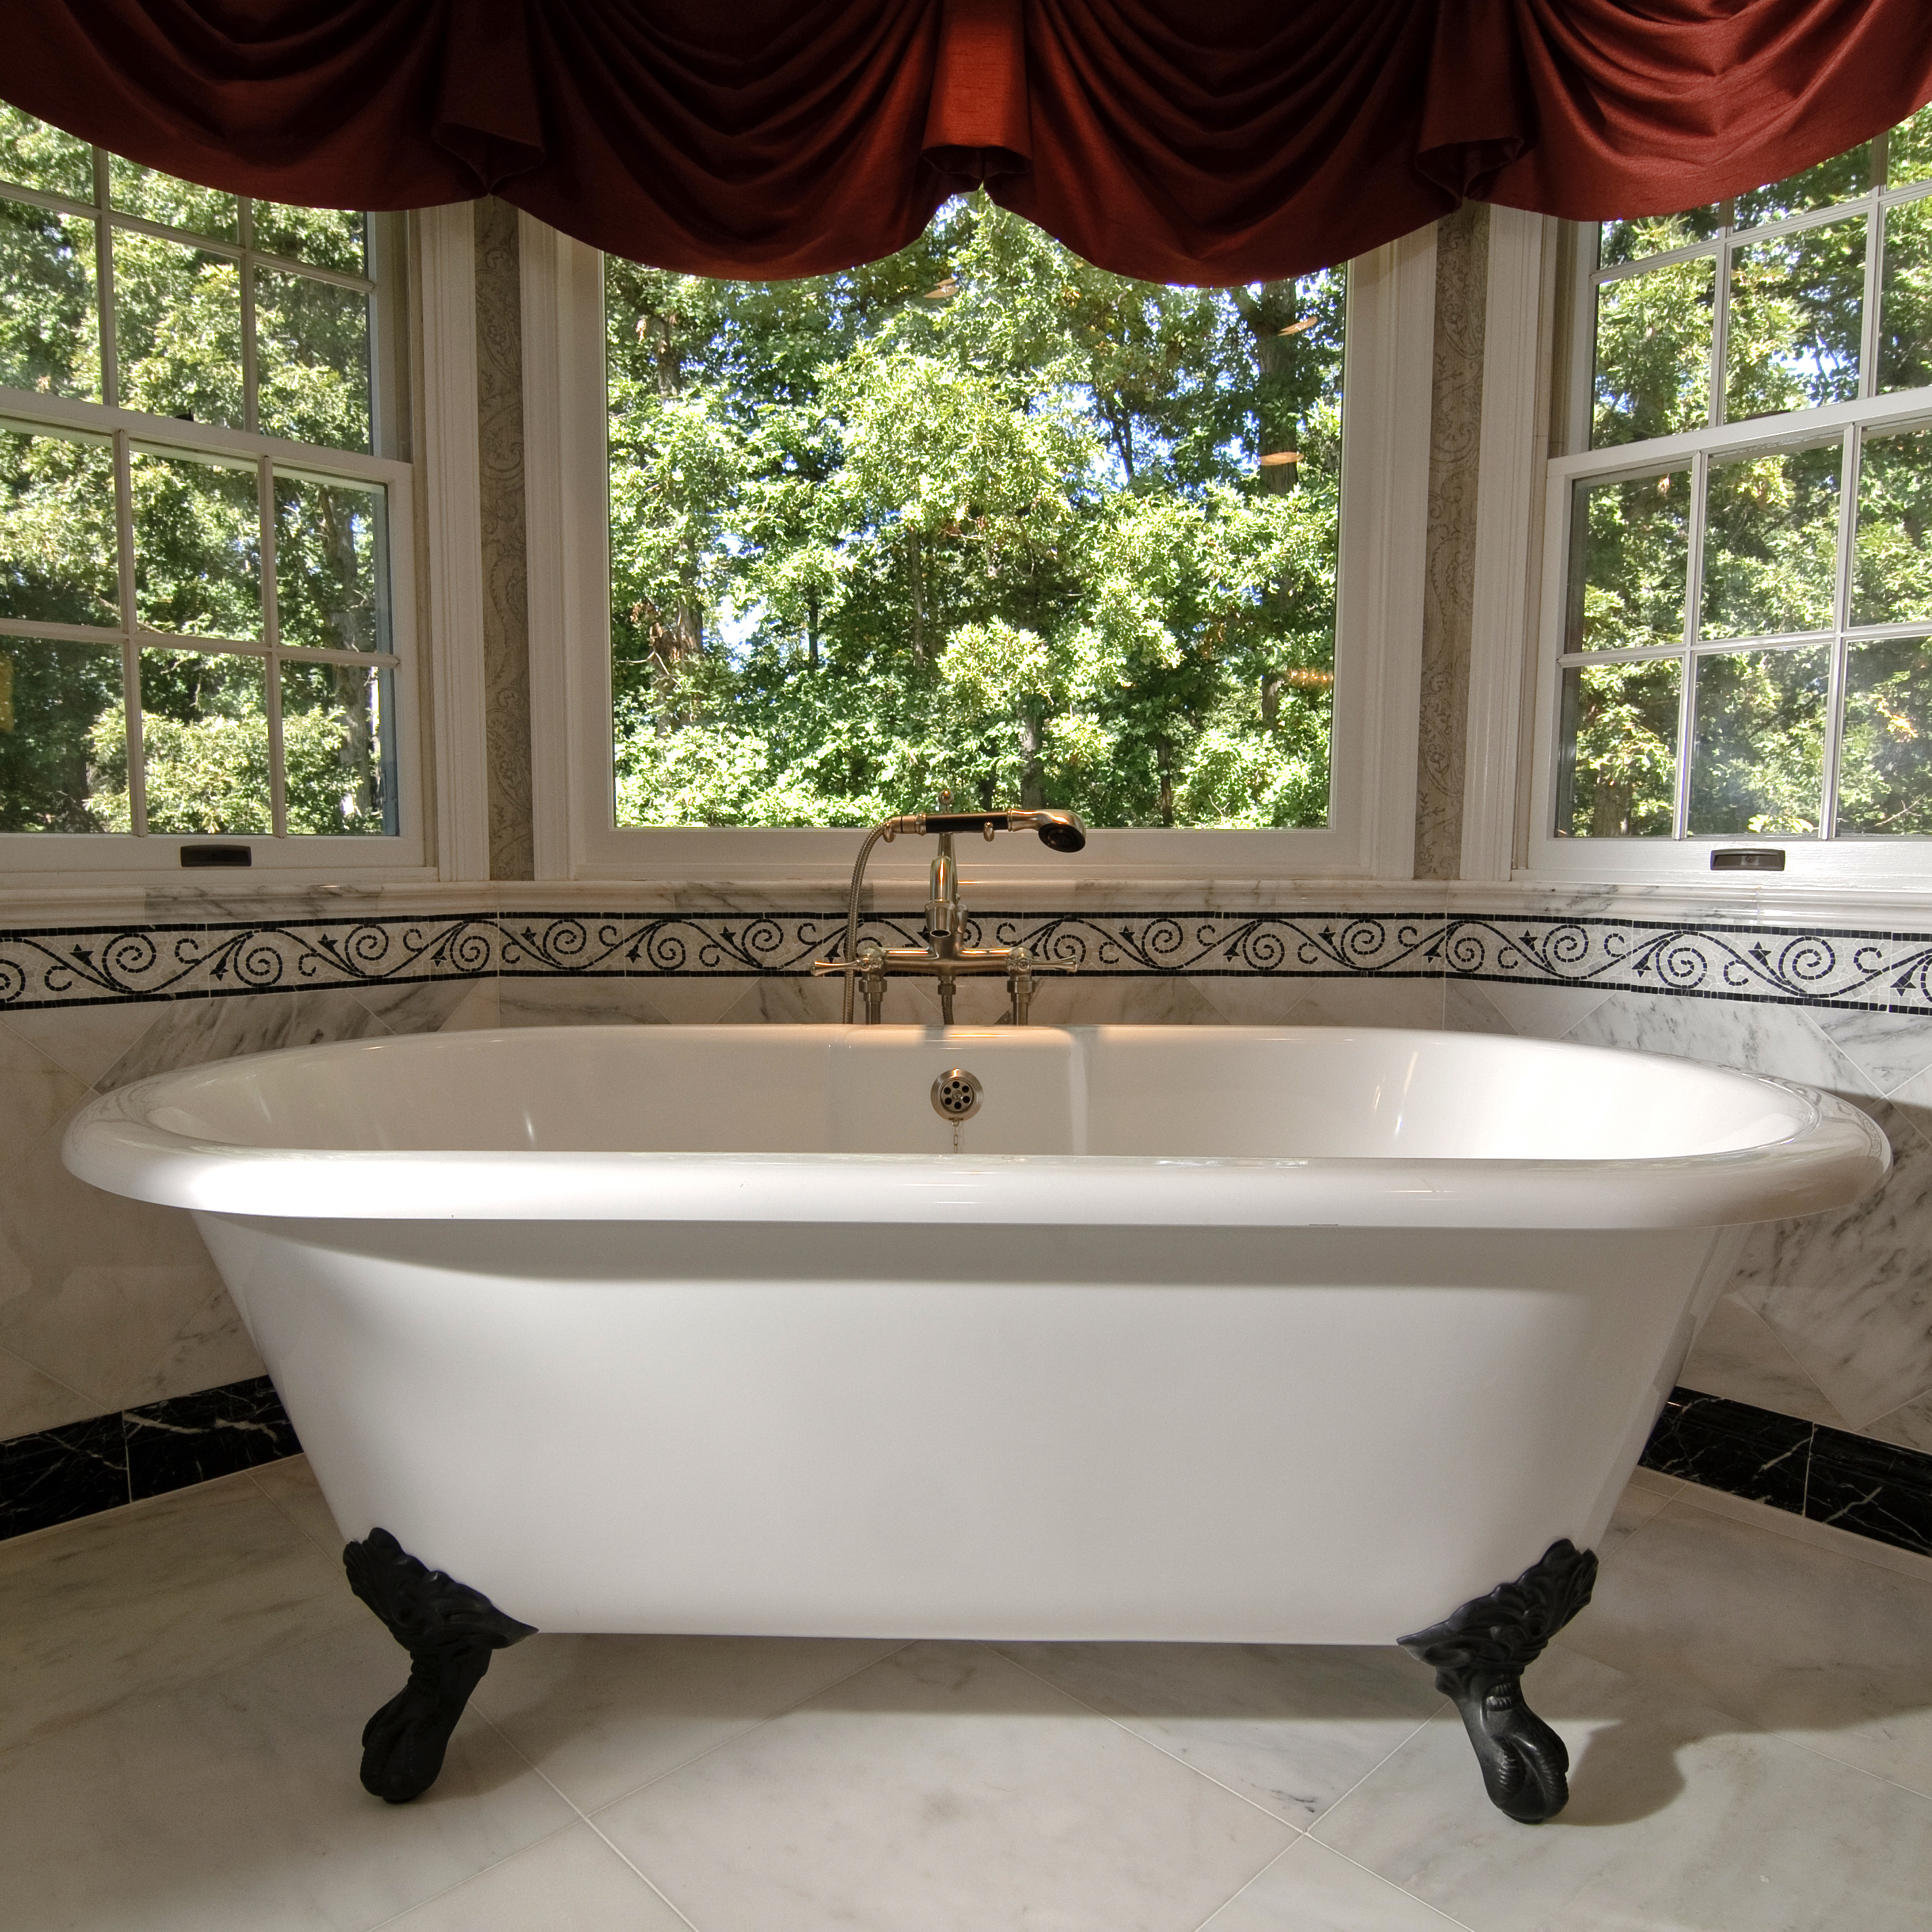 northern-virgina-kitchen-remodel-bath-tub